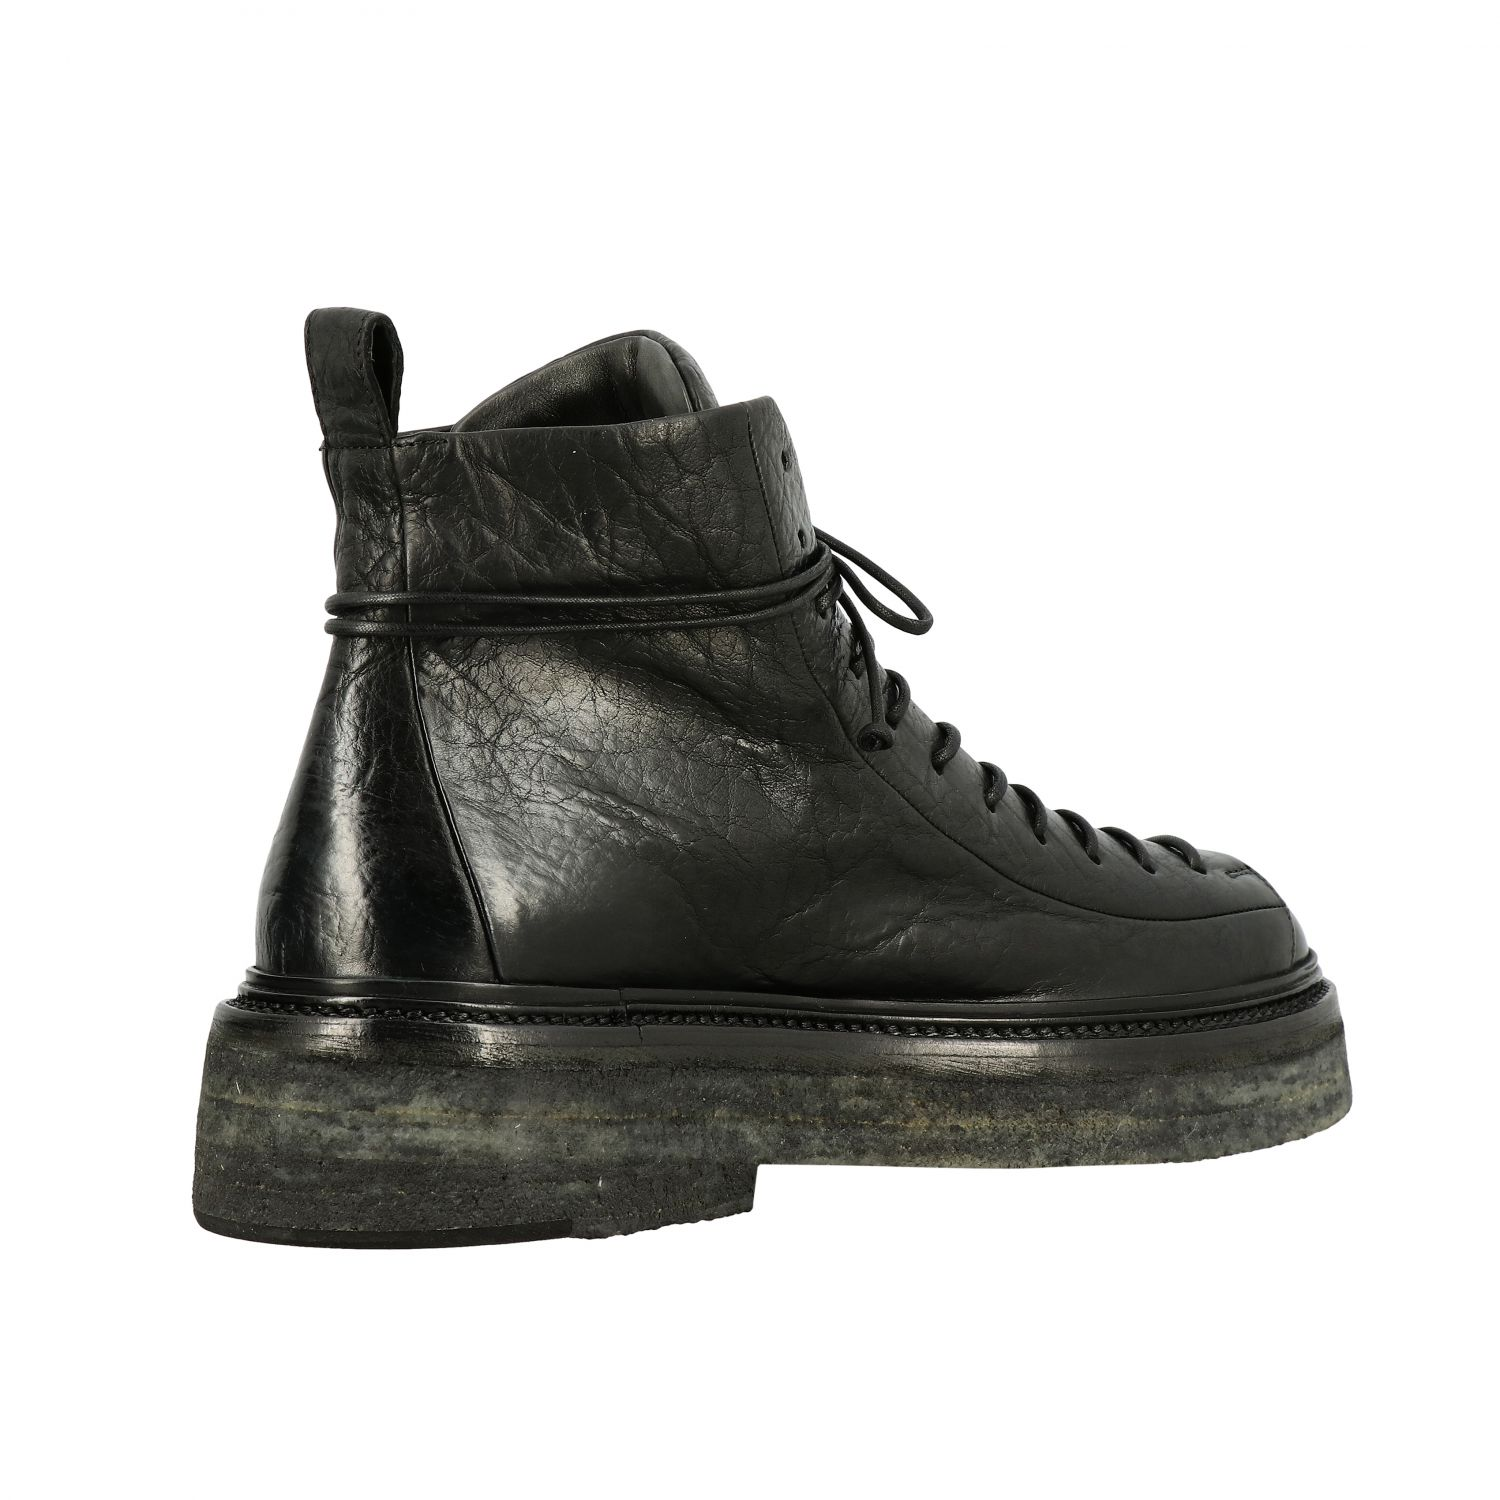 Derby Pedula Parruccona Marsell in pelle nero 5